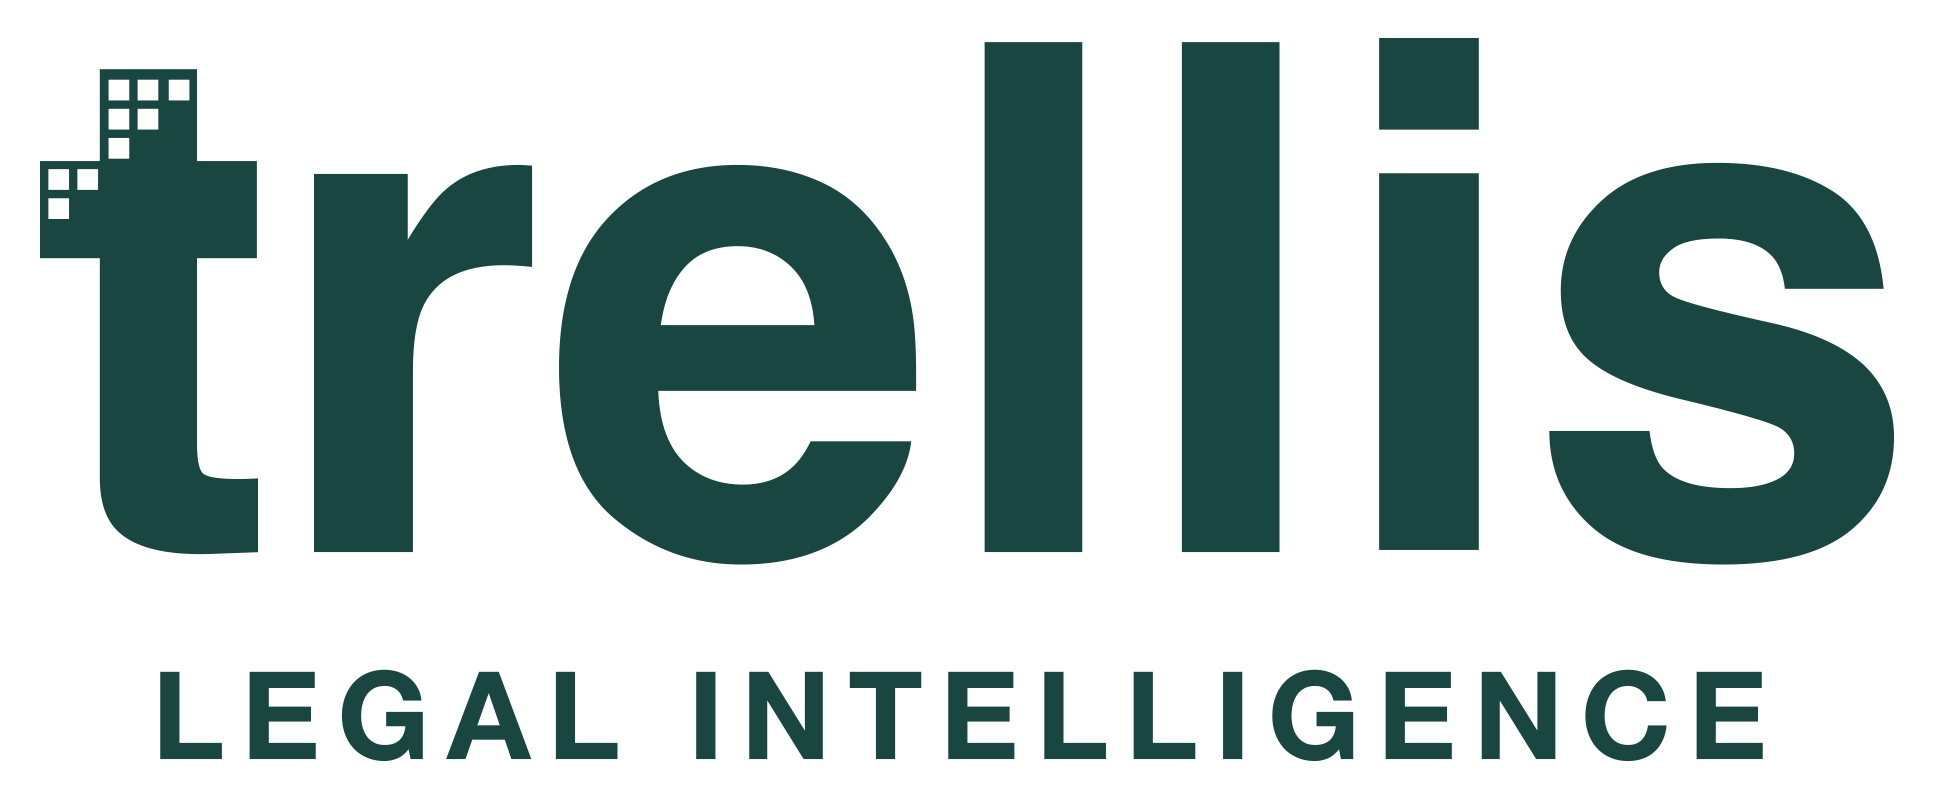 Alon Shwartz joins Trellis as Co-Founder/CPO; David Sacks added to Board of Directors